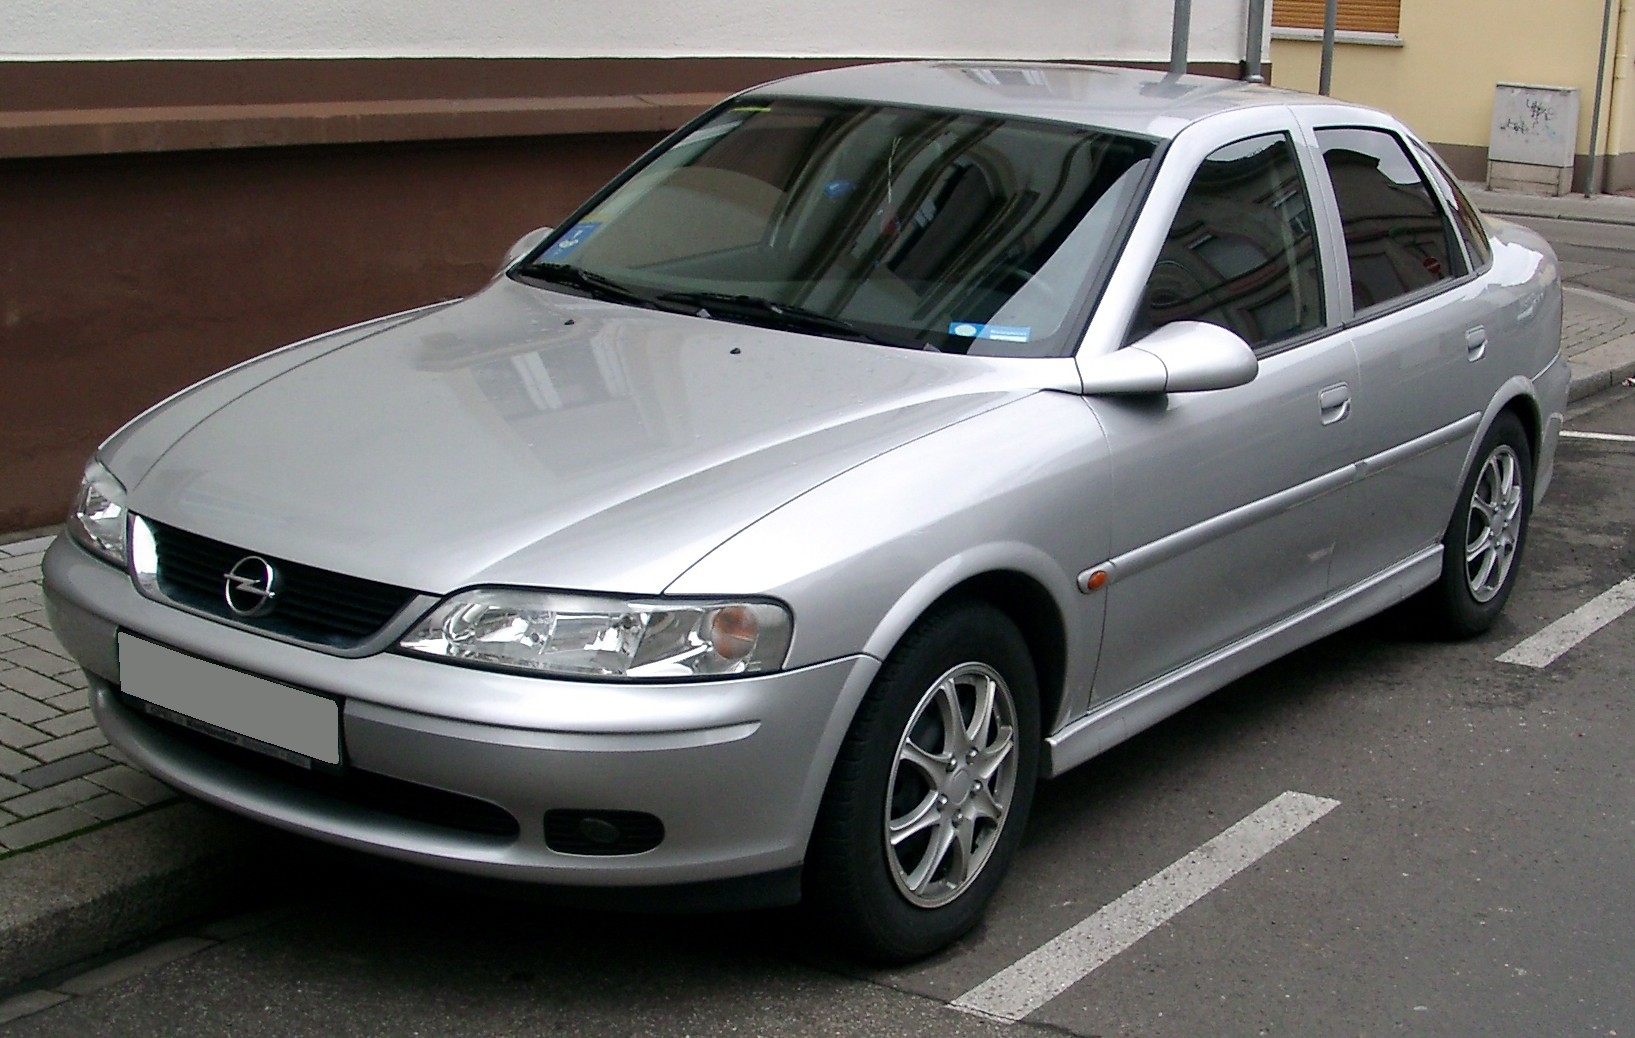 holden vectra hatcback (b) 2002 images